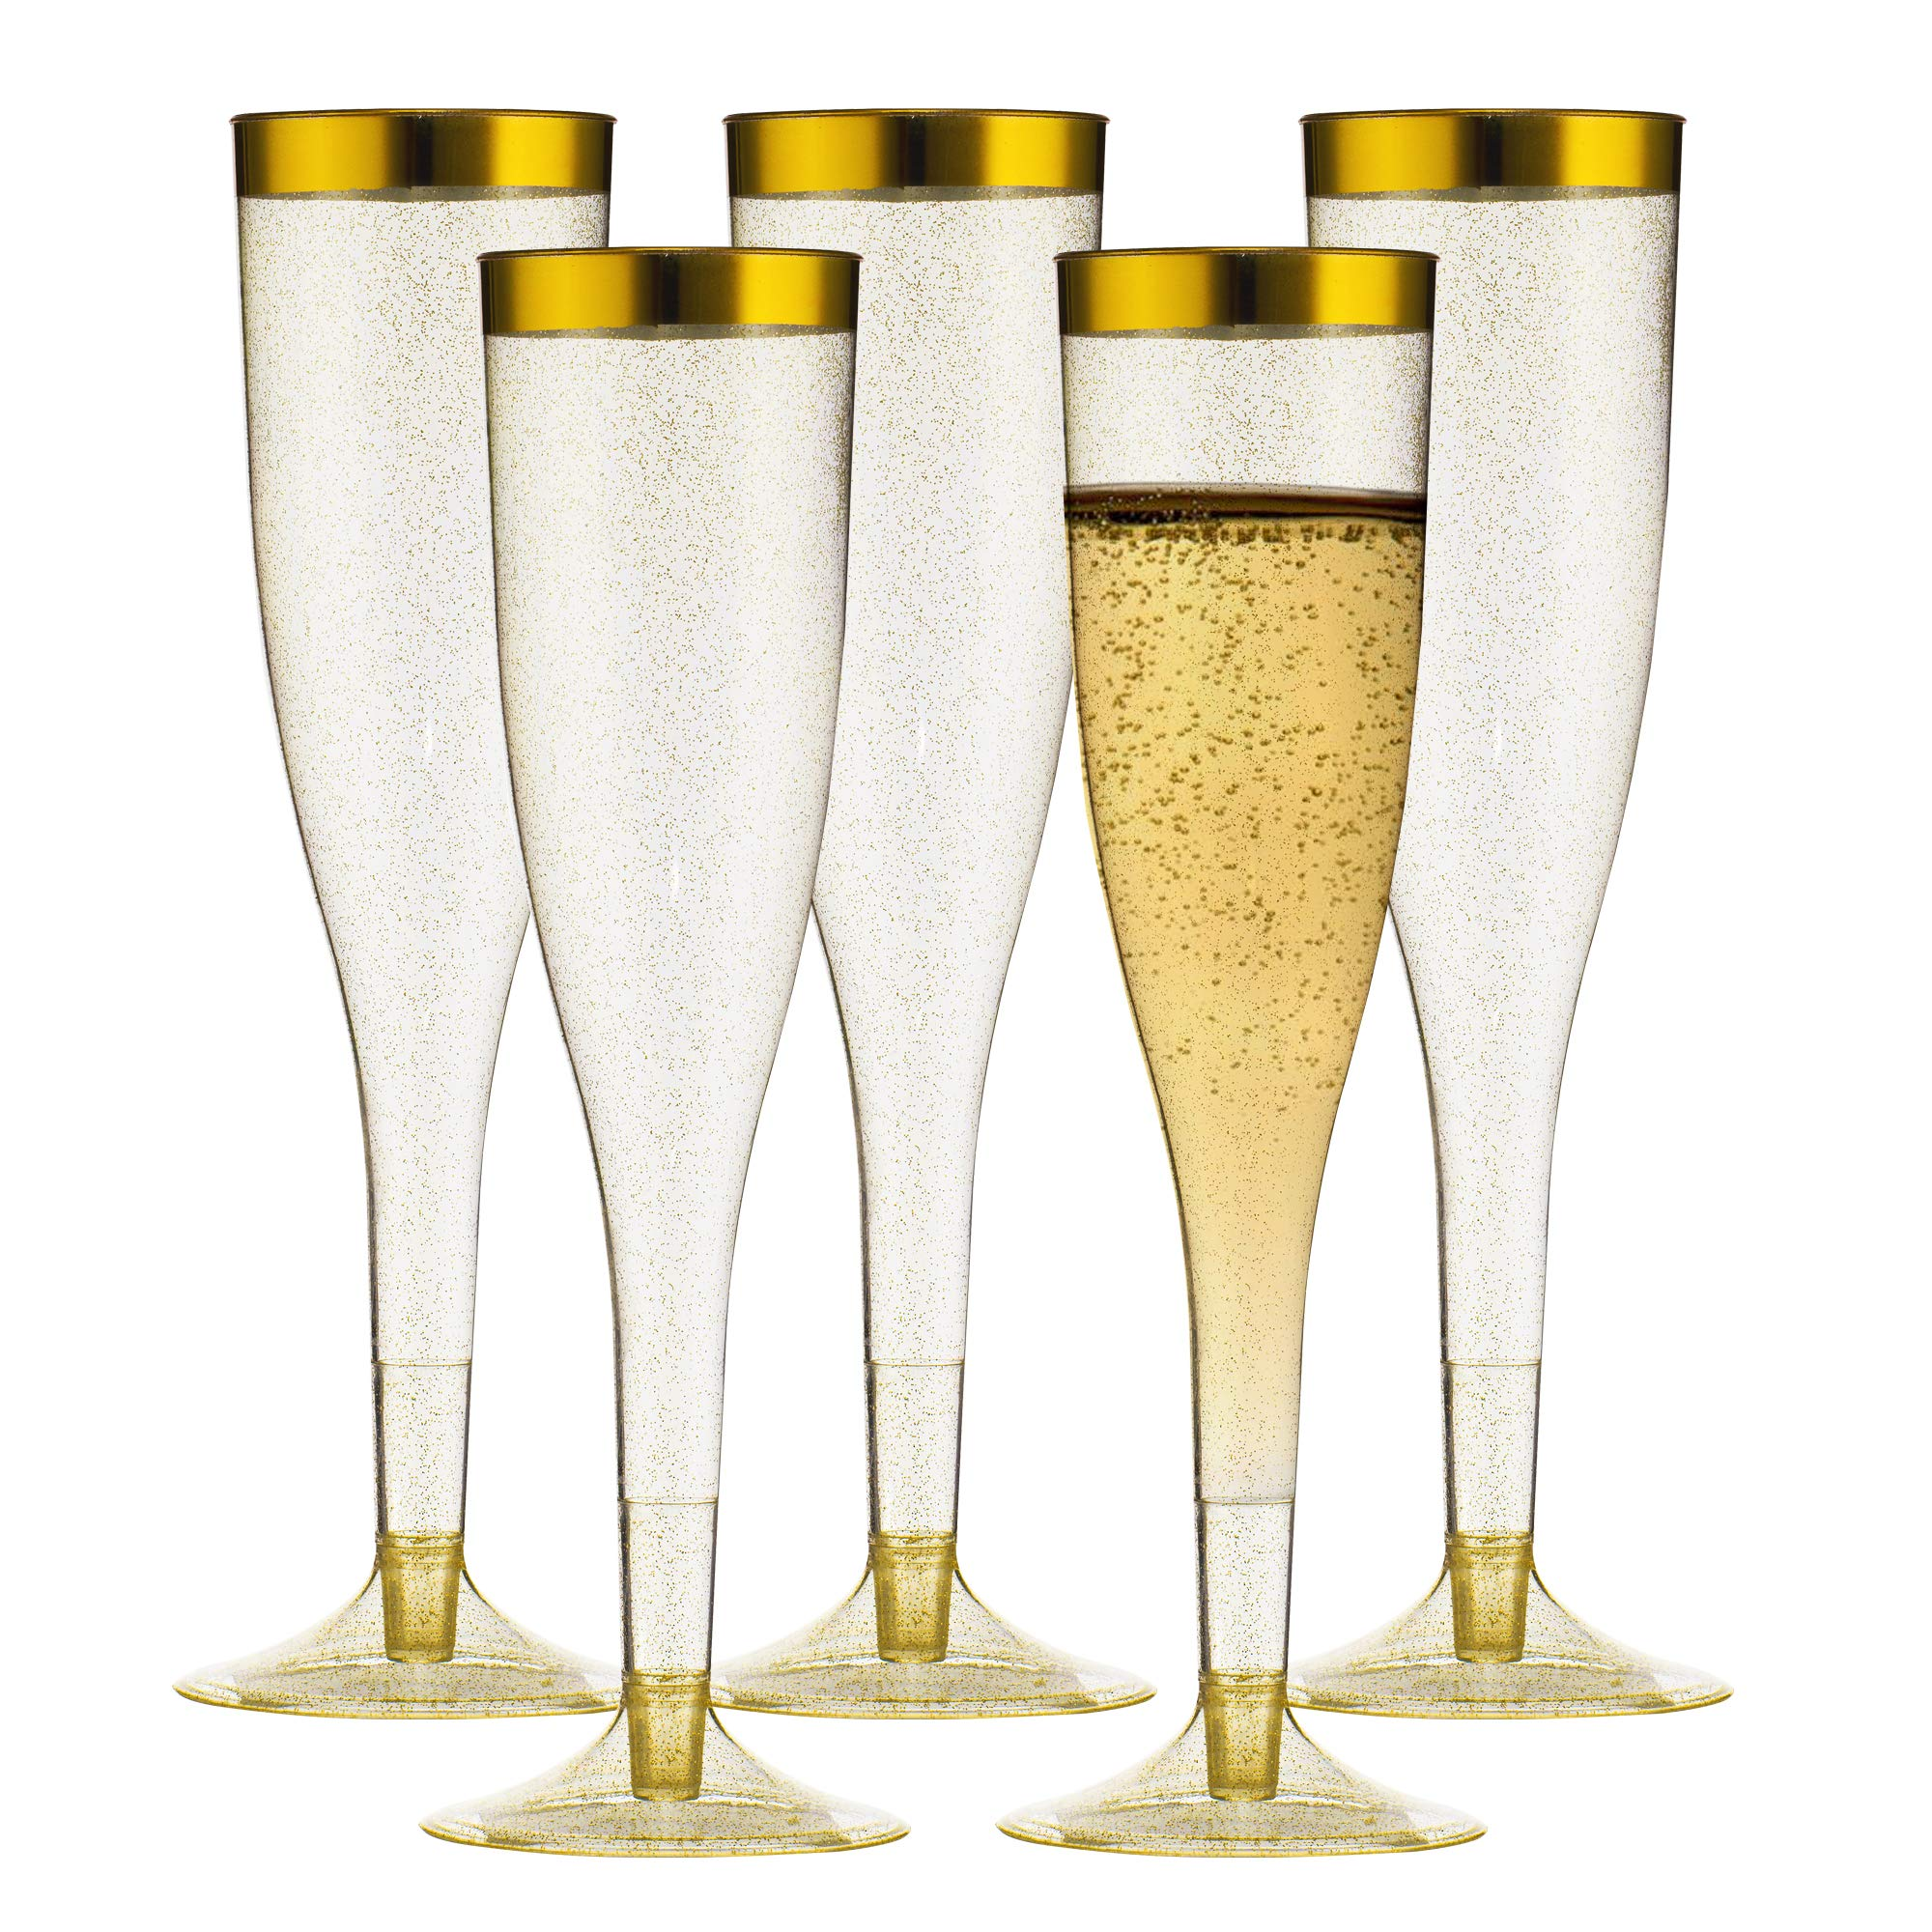 TasteOfQuality Gold Plastic Champagne Flutes - 50-Pcs , Gold Glitter, 6.5 Oz Heavy Duty Wine Glass, Clear Plastic Toasting Glasses, Gold Rim Champagne Flutes, Plastic Wine Glasses for Parties